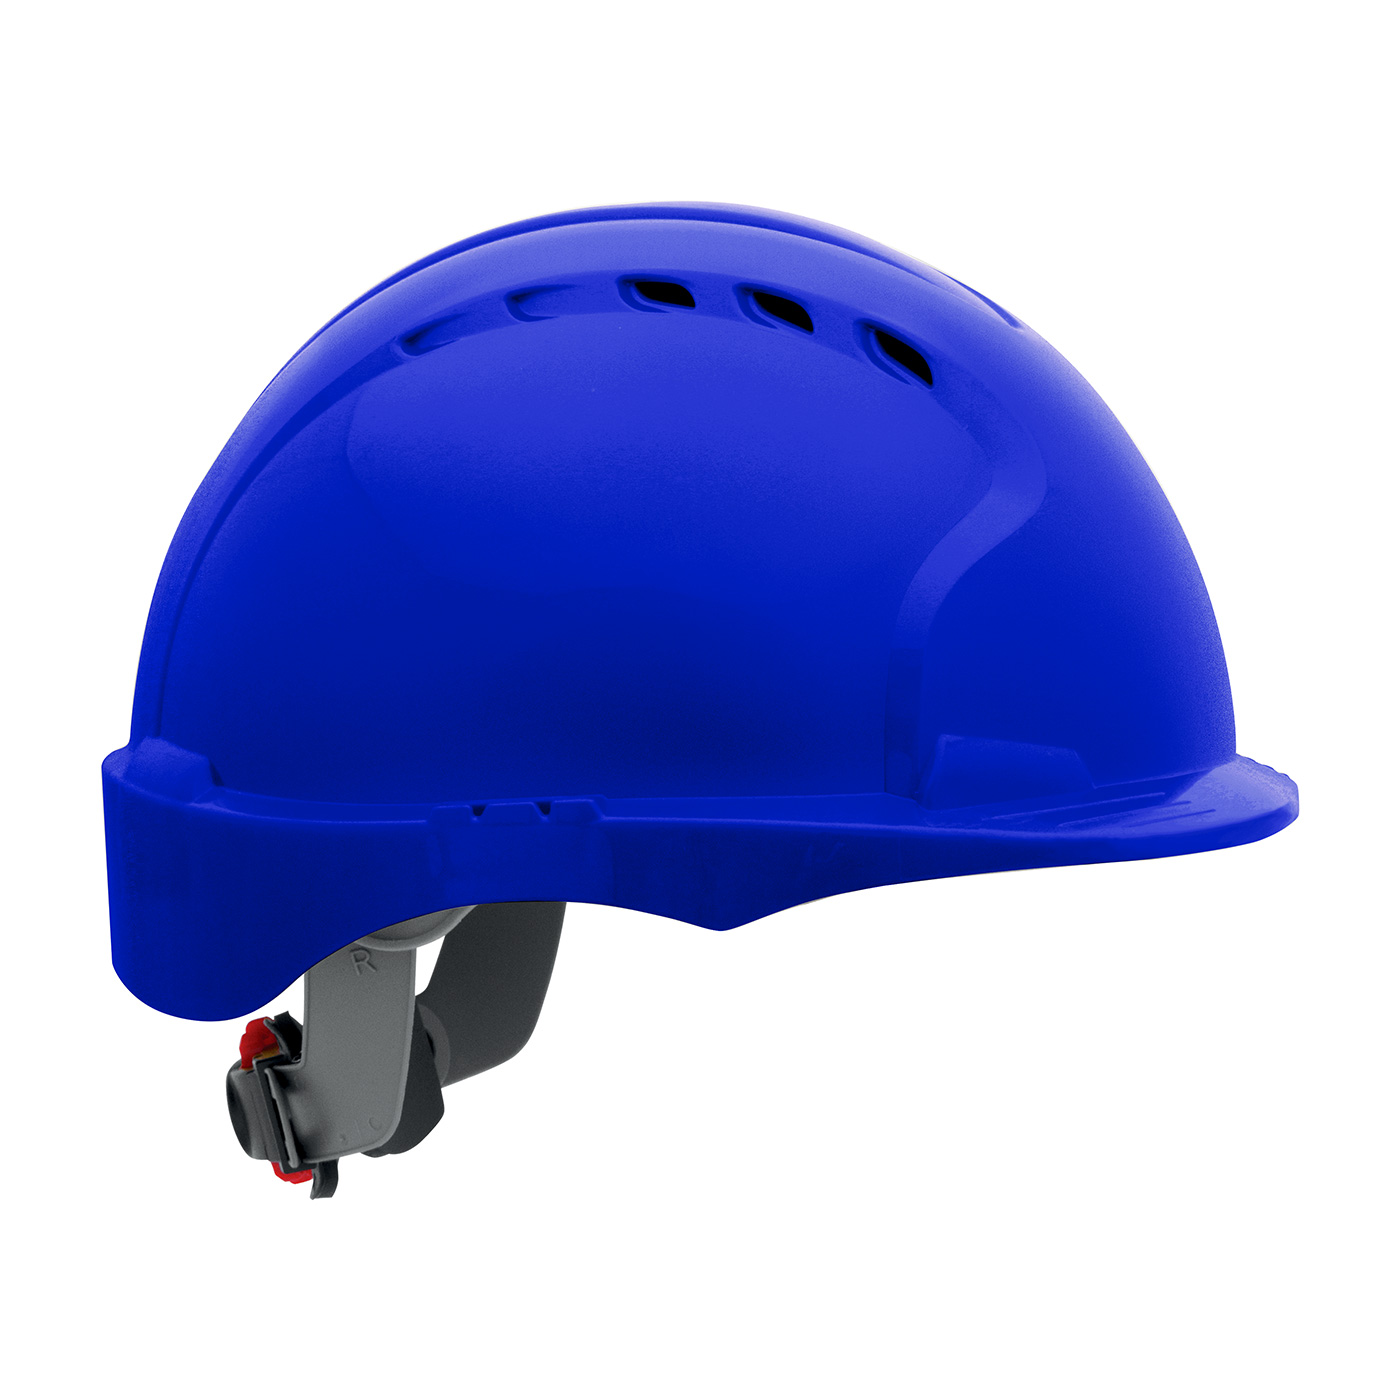 280-EV6151SV PIP® Evolution® Deluxe 6151 Vented, Short Brim Hard Hat with HDPE Shell, 6-Point Polyester Suspension and Wheel Ratchet Adjustment - Blue